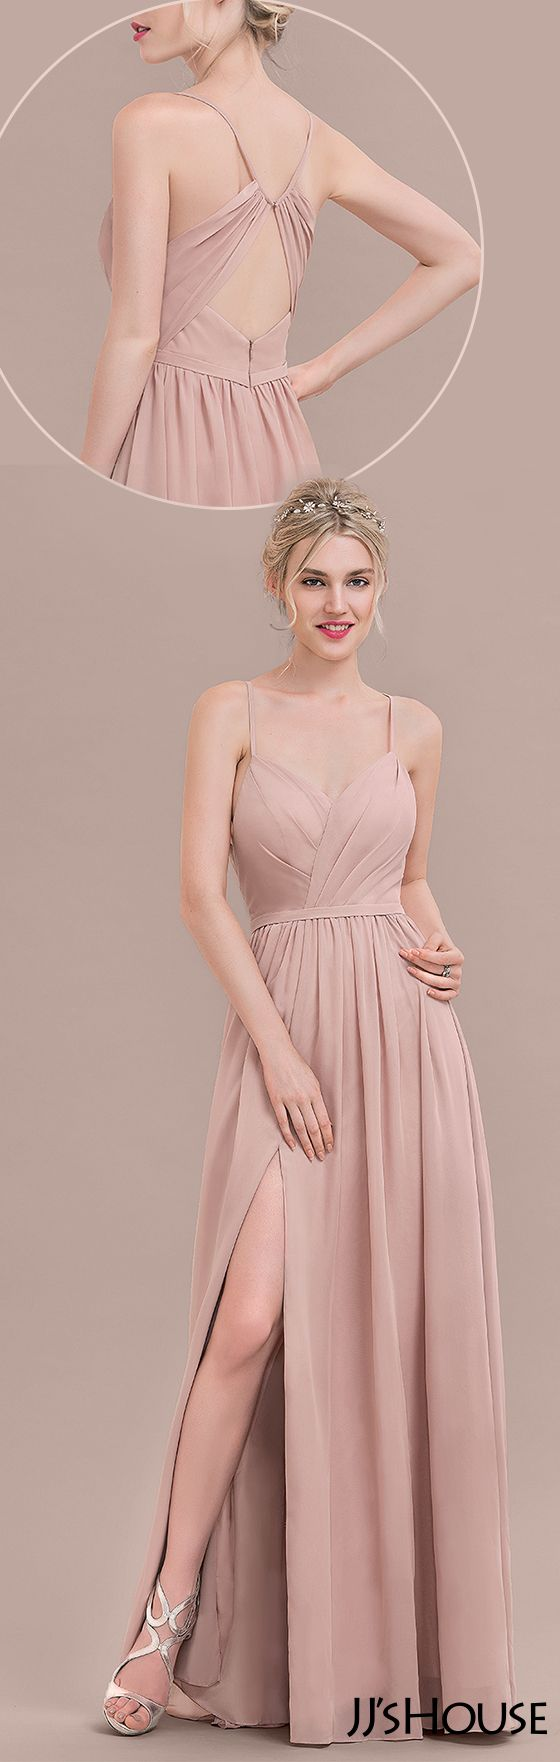 JJsHouse #Bridesmaid | Long gowns | Pinterest | Vestido largo ...